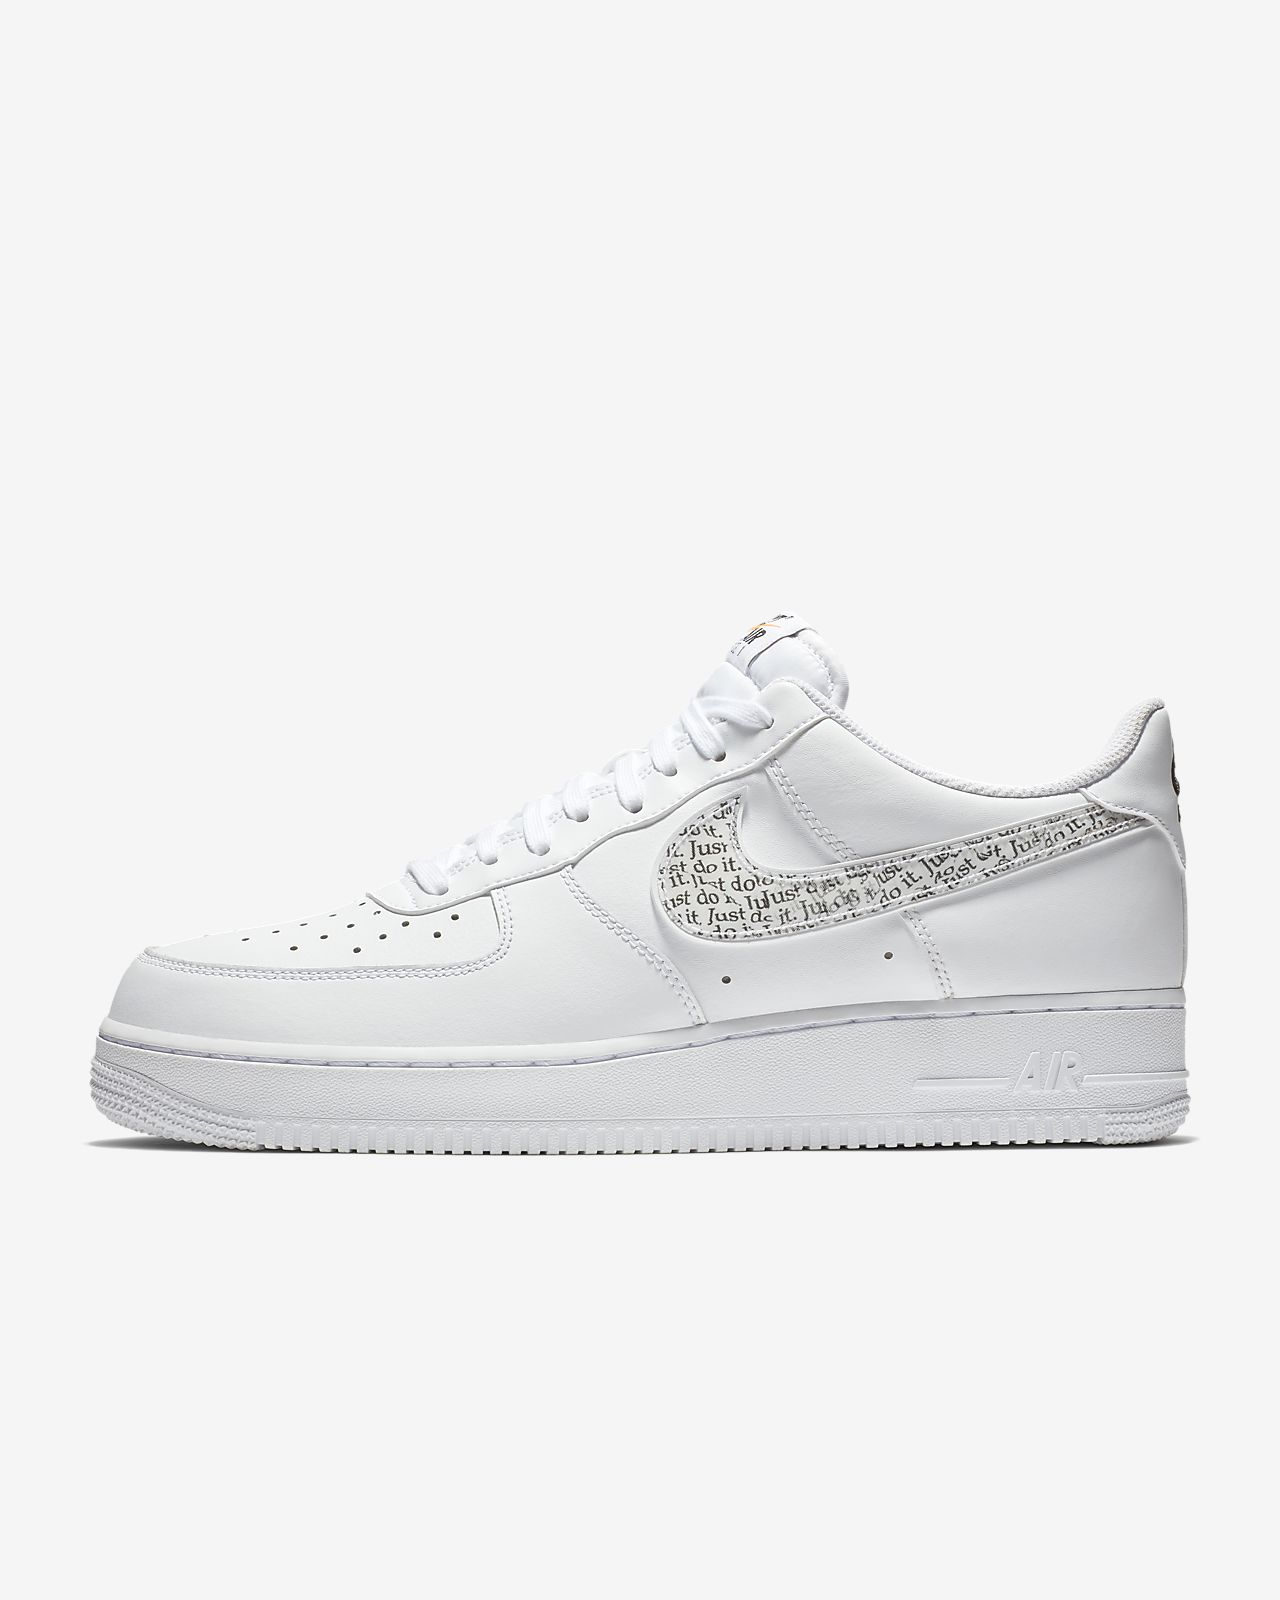 low priced 96f21 cfb8c ... Calzado para hombre Nike Air Force 1  07 LV8 JDI LNTC